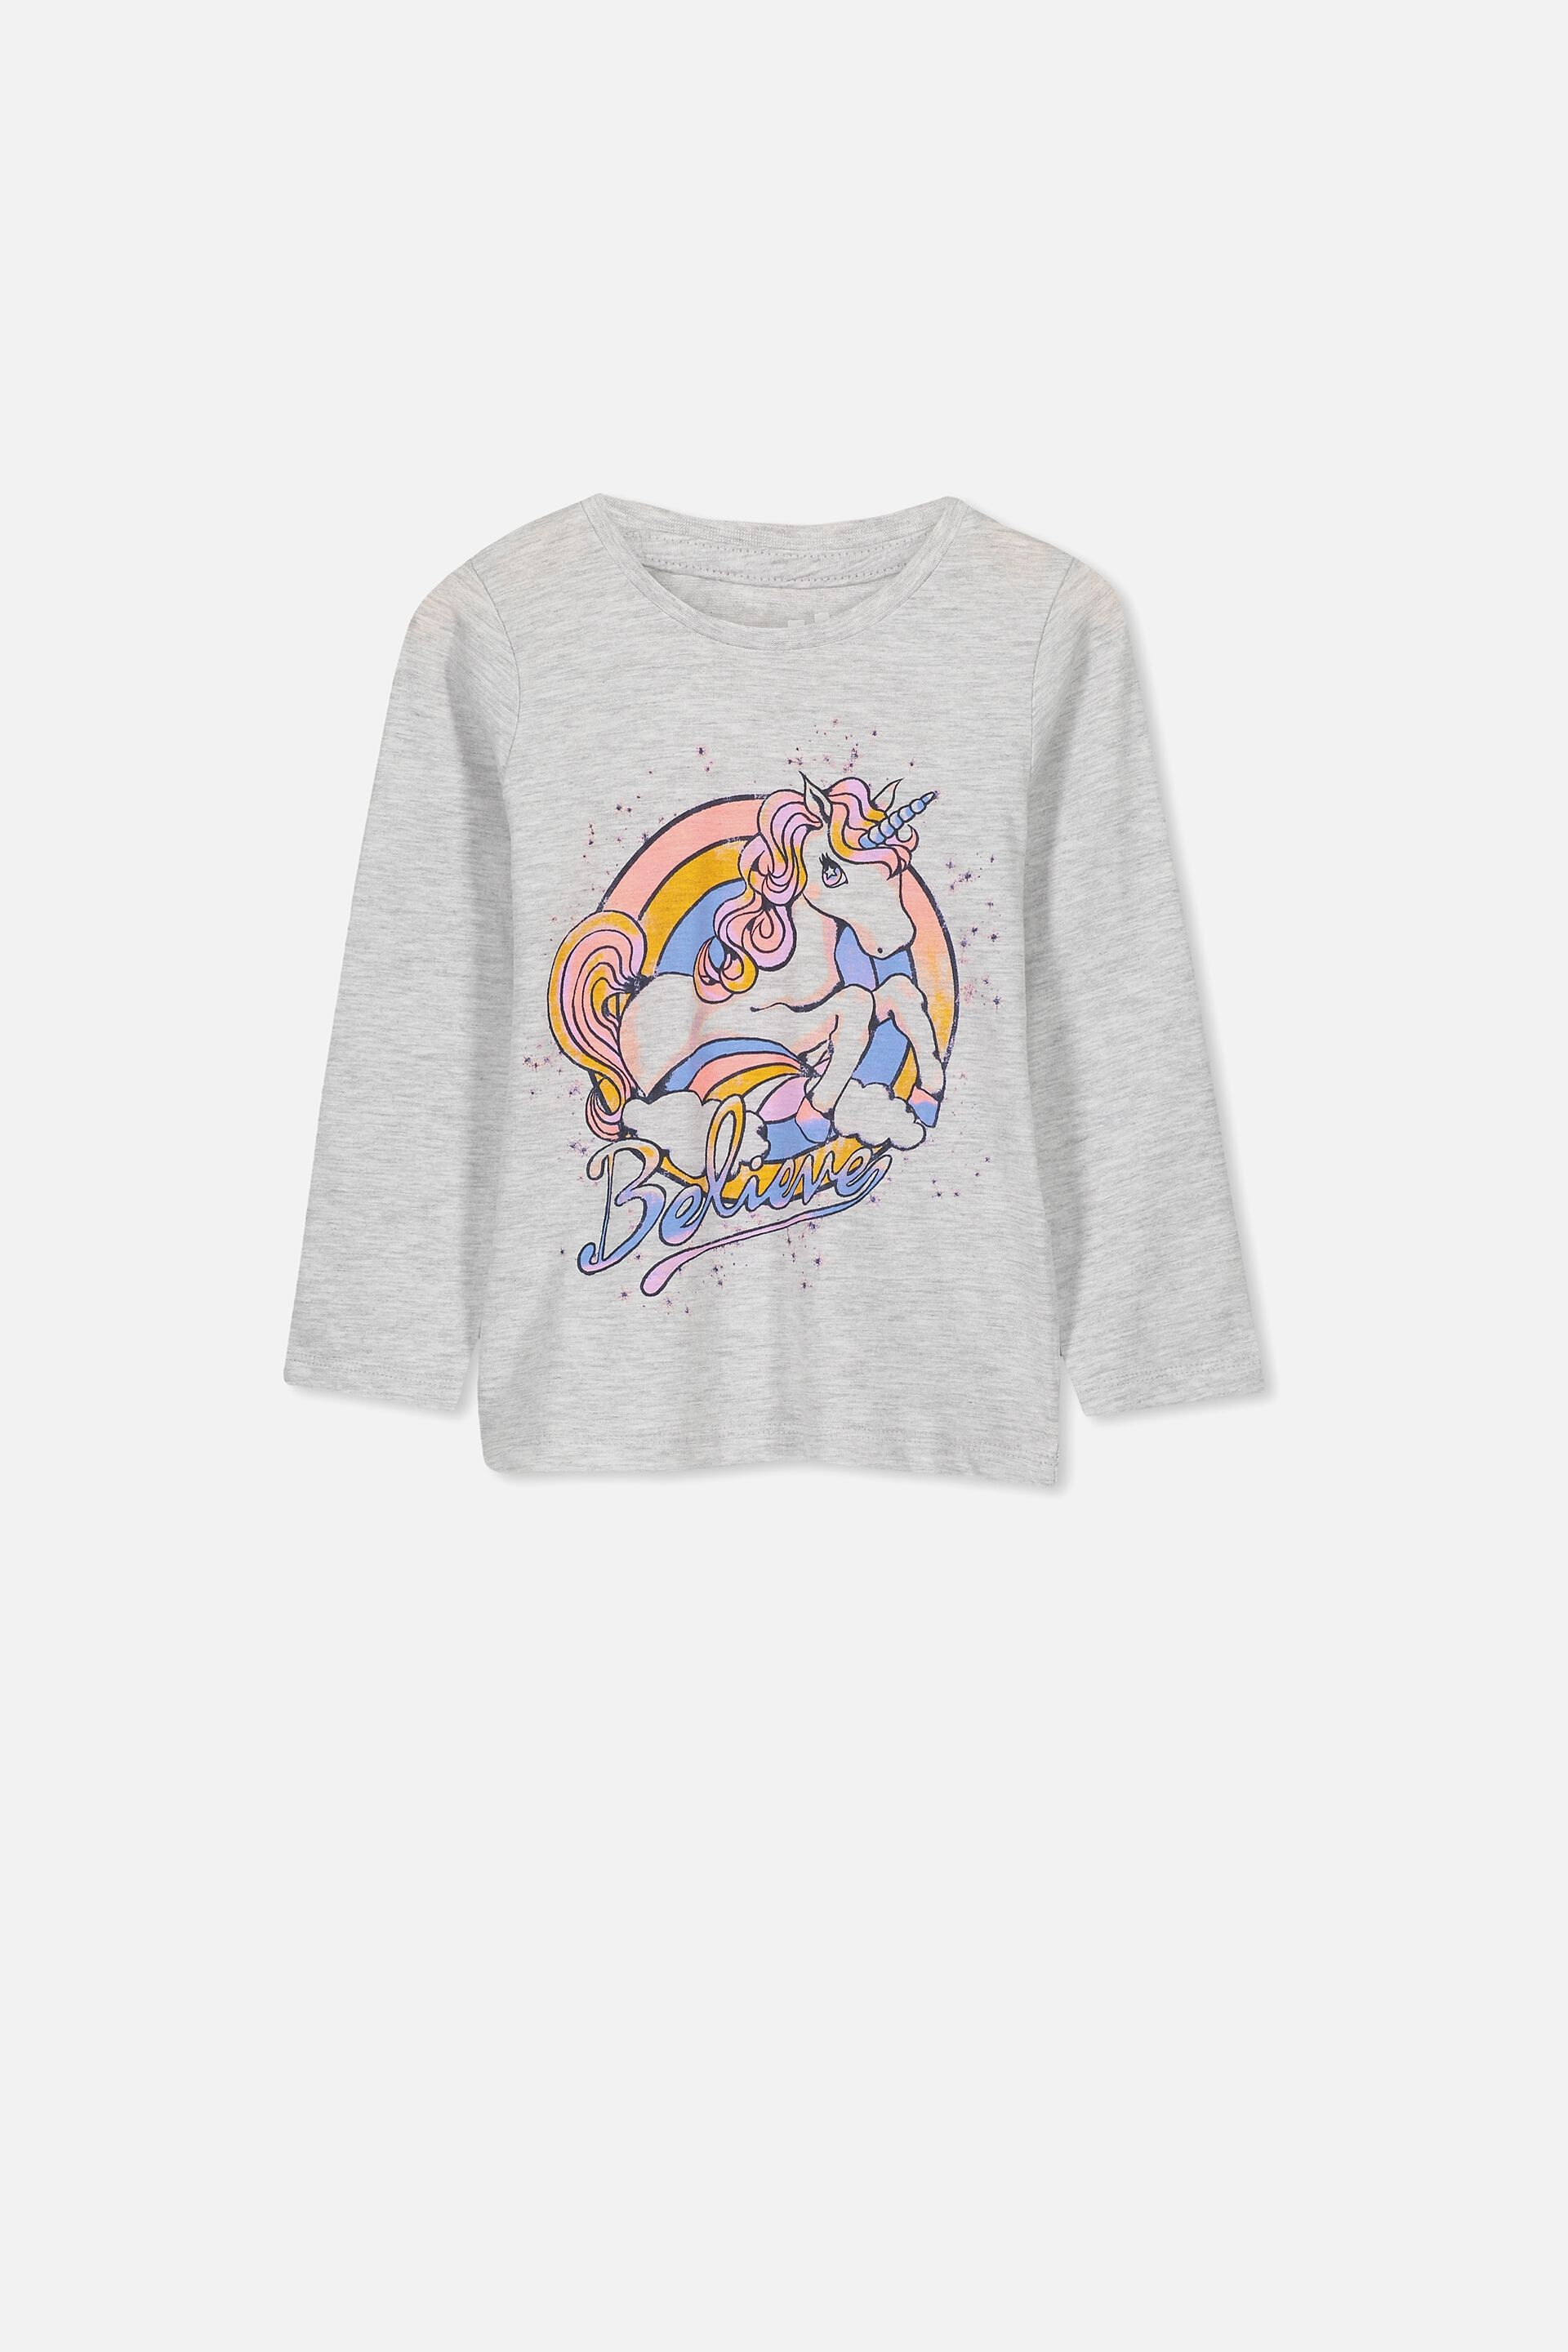 Kids Personalised Believe In Unicorn T Shirt All Sizes Girls Boys Gift Present